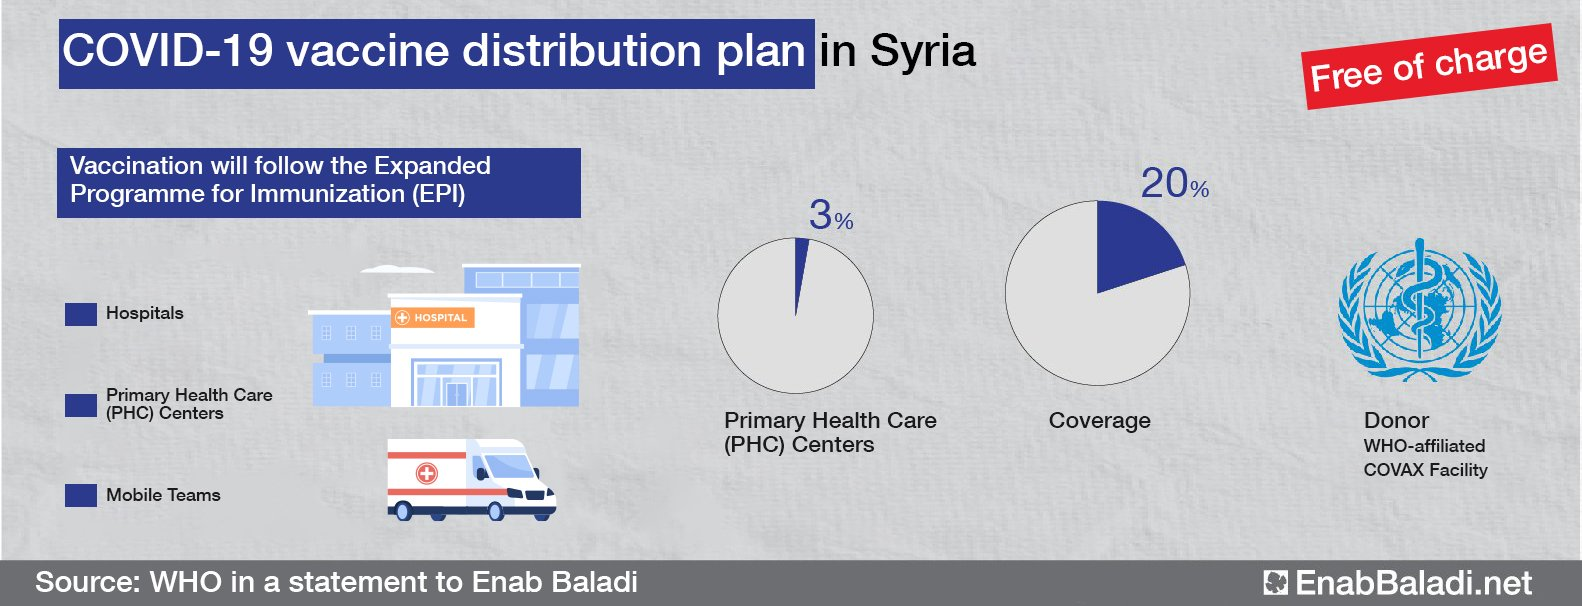 The distribution plan of the COVID-19 vaccine in Syria